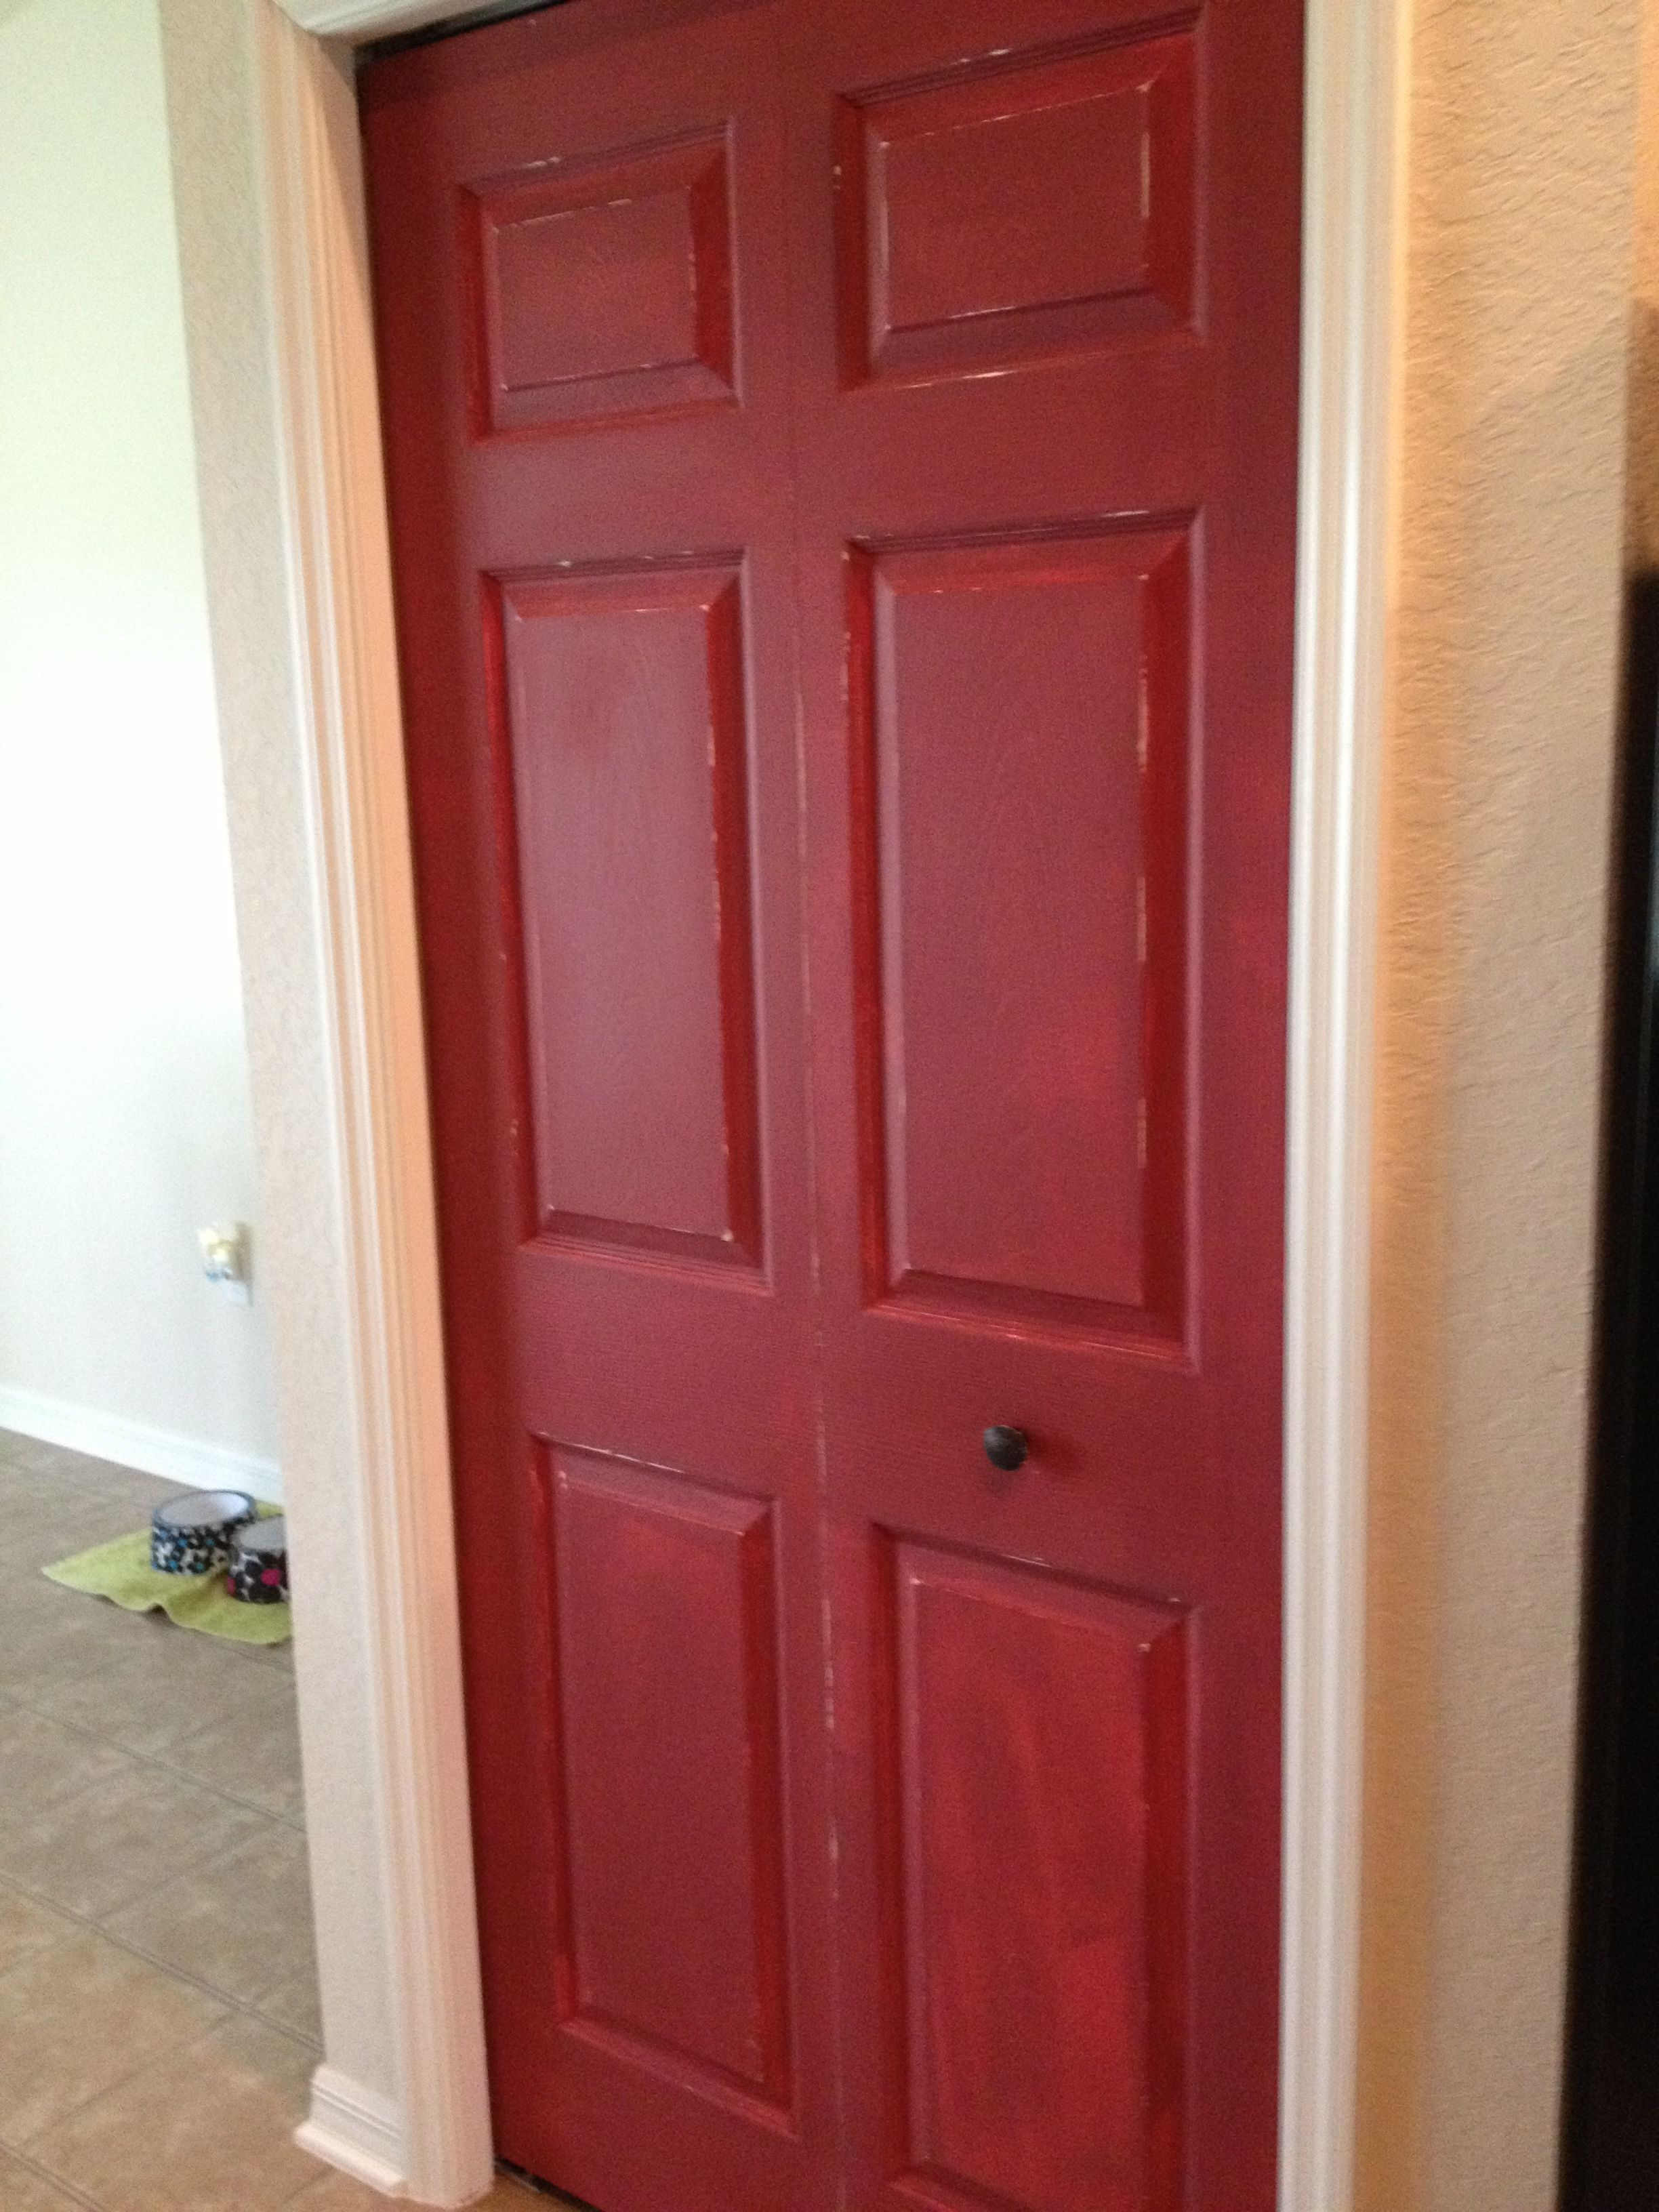 My new pantry door! Cabin wood red by Valsper then sanded with steel wool and 220 sand paper to give it an older look! Nice accent for my kitchen